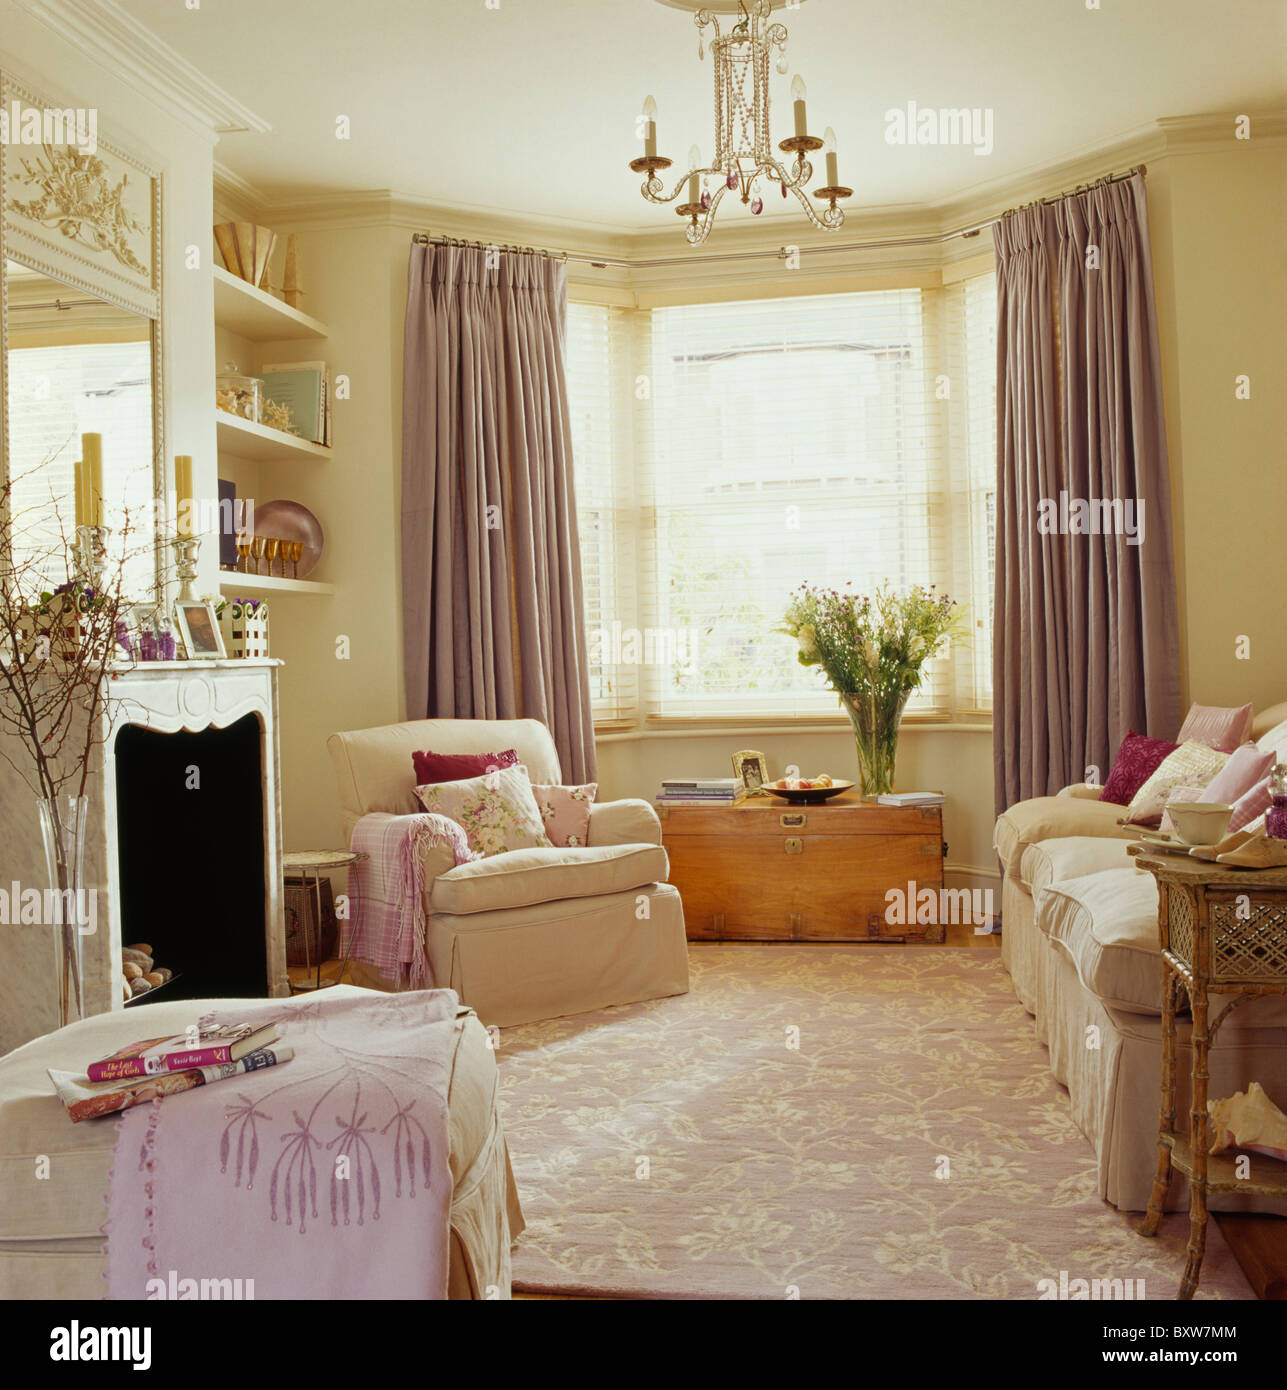 Cream Textured Carpet In Cream Living Room With Pale Mauve Silk Stock Photo Alamy